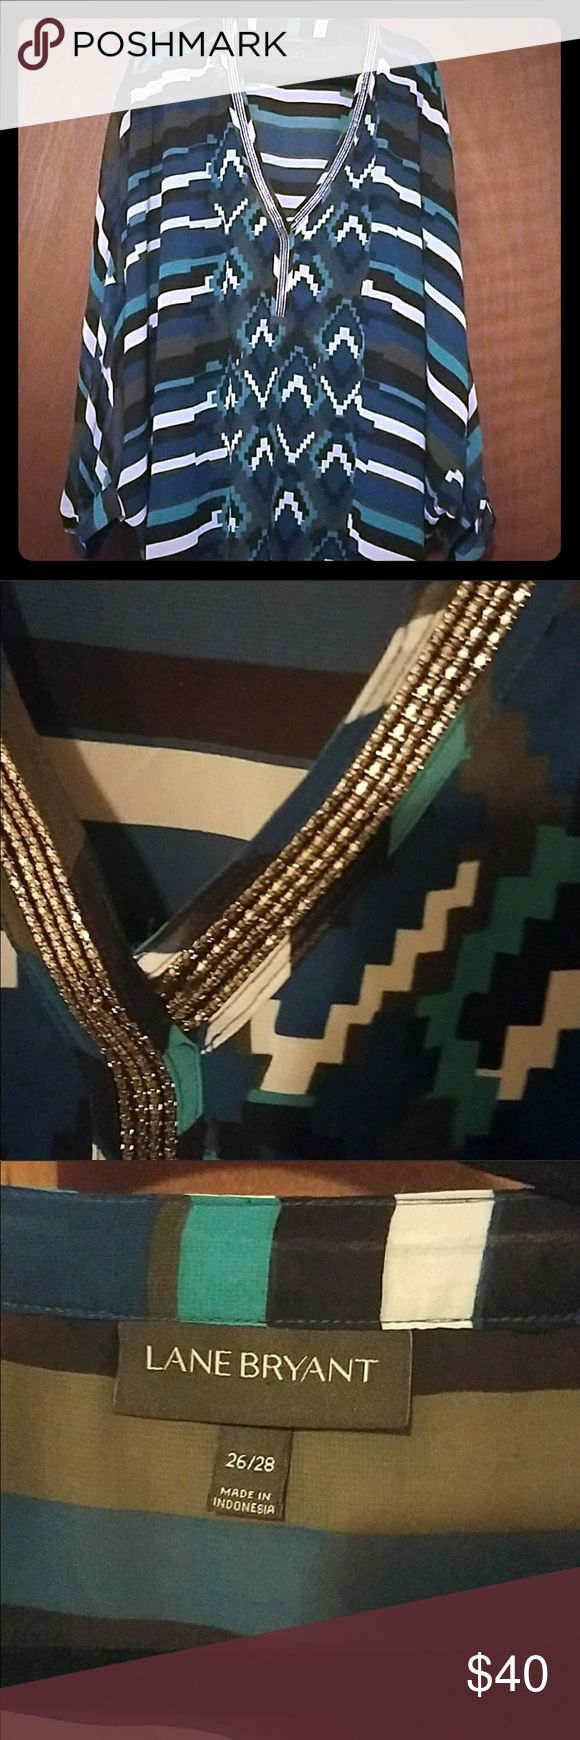 Lane Bryant Aztec Sheer Top W/Batwing sleeves NWOT NWOT -Beautiful turquoise, dark blue and black with white accents and silver embellishments Aztec print batwing top. Sleeves are cuffed landing right at the elbow. Best option may be to wear a camisole or tank underneath. Please see last picture for an idea of how this top will fit. 26/28 Lane Bryant Tops Blouses